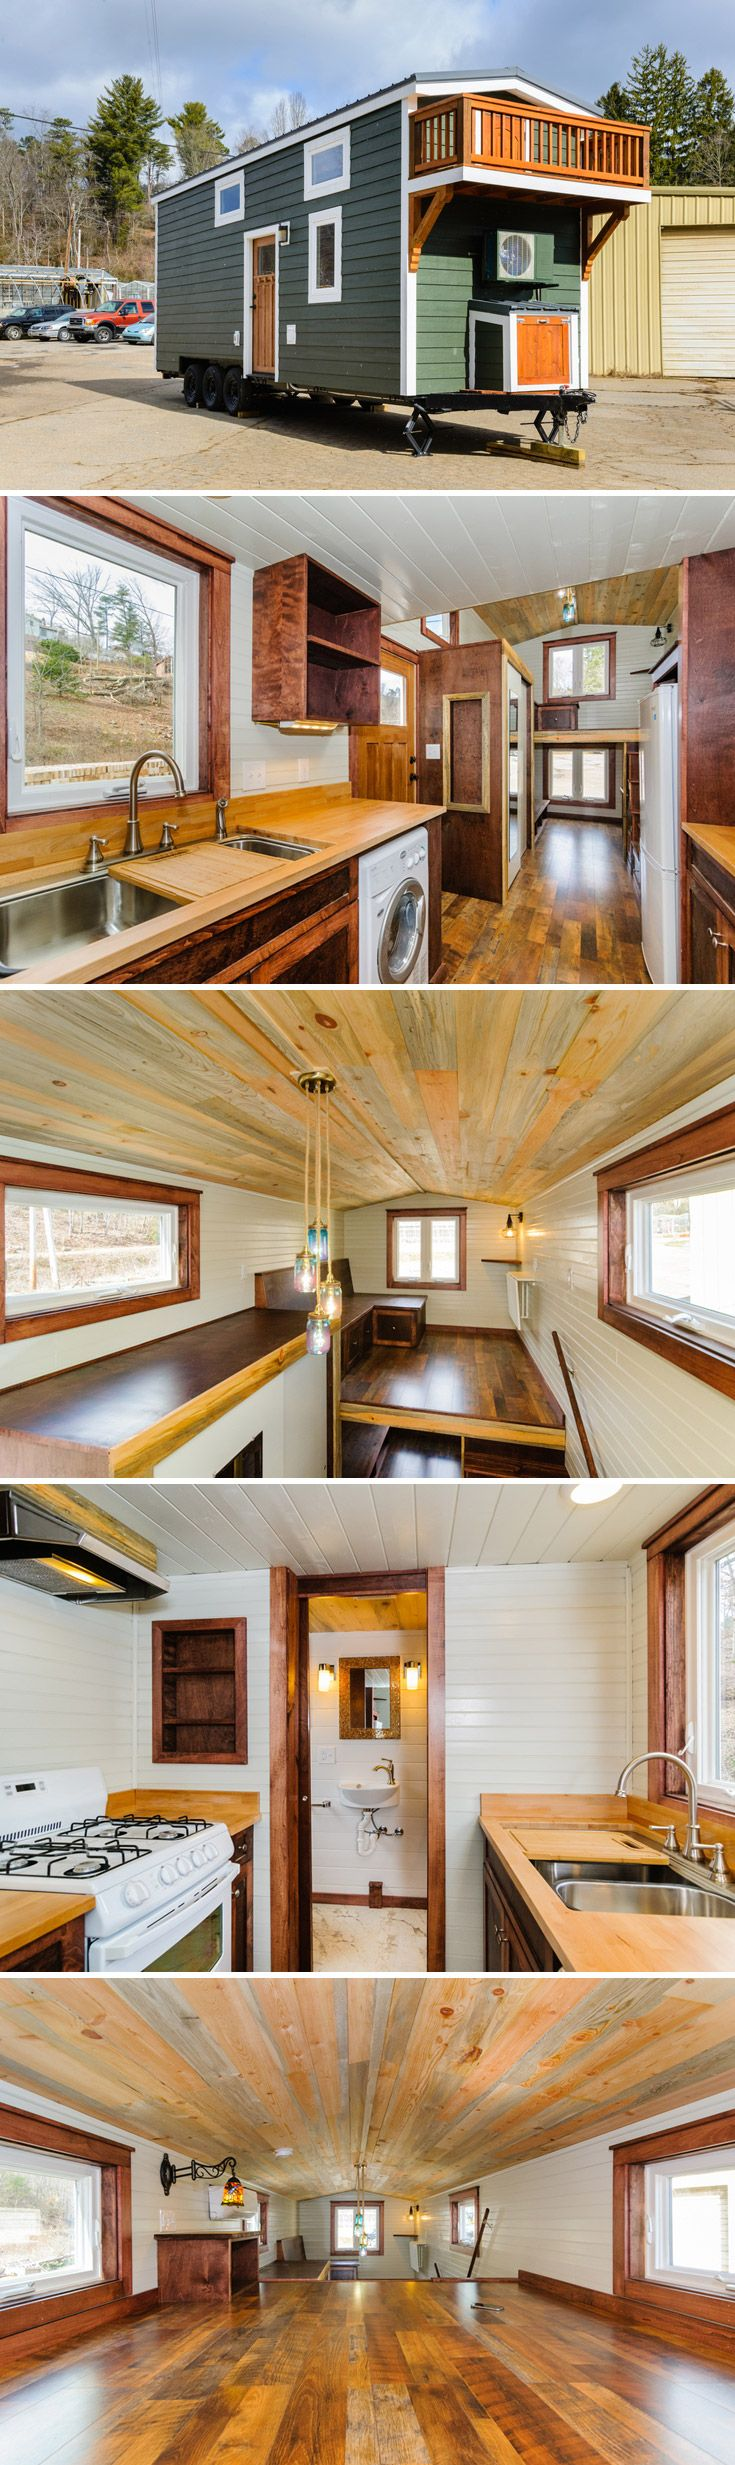 This 208 sq.ft. tiny house on wheels includes a split level loft, balcony, and…